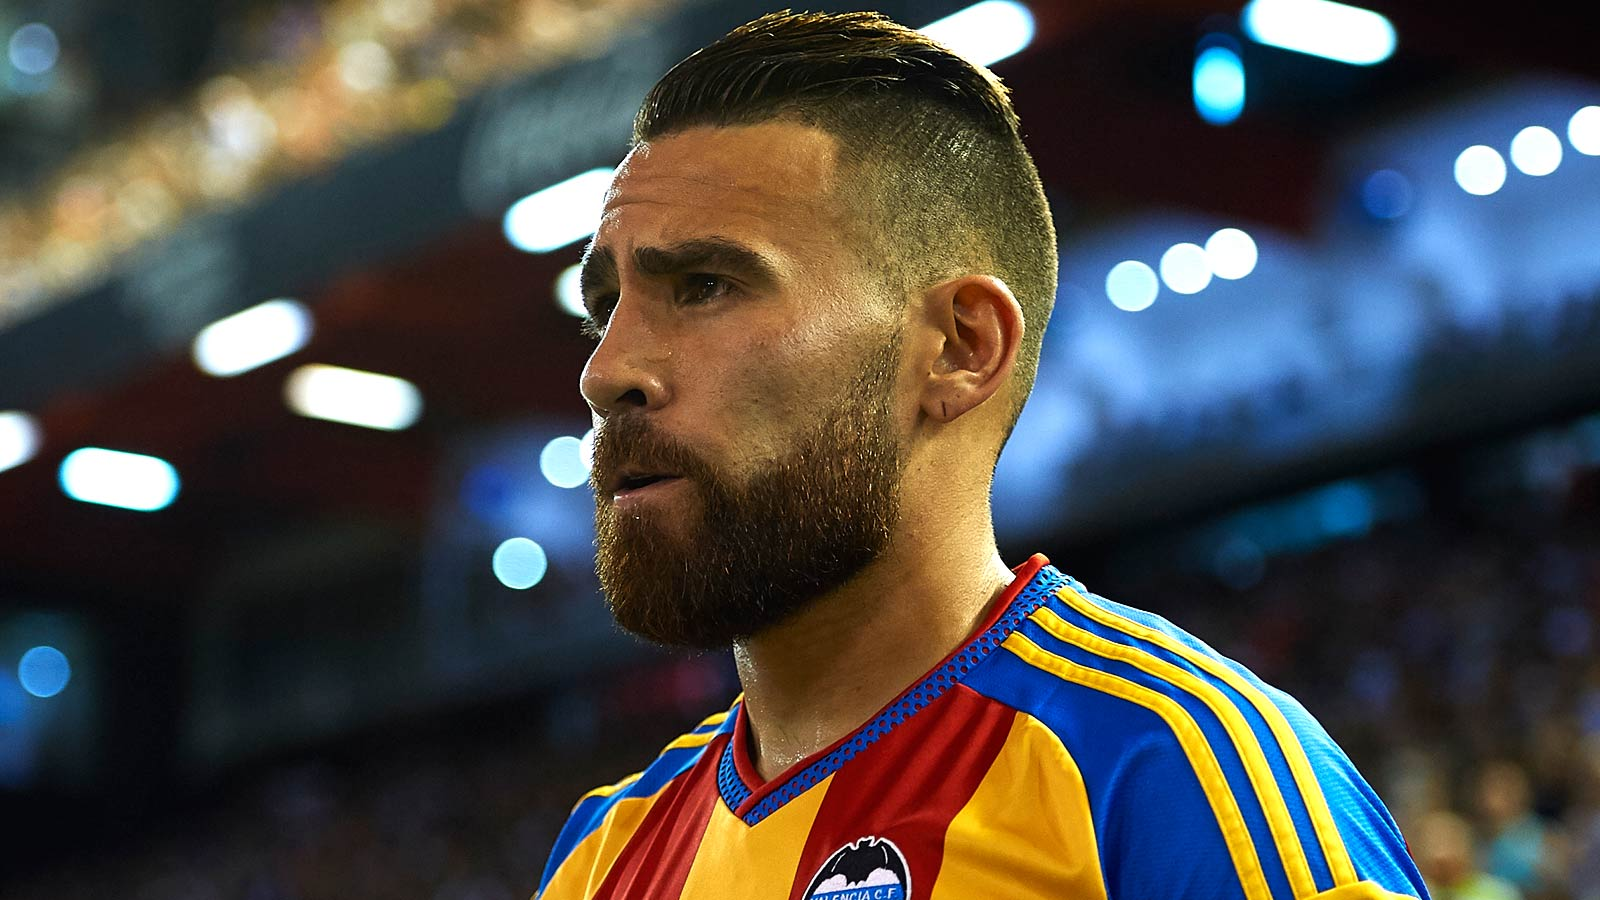 Report: Otamendi set for Man City medical after deal reached with Valencia